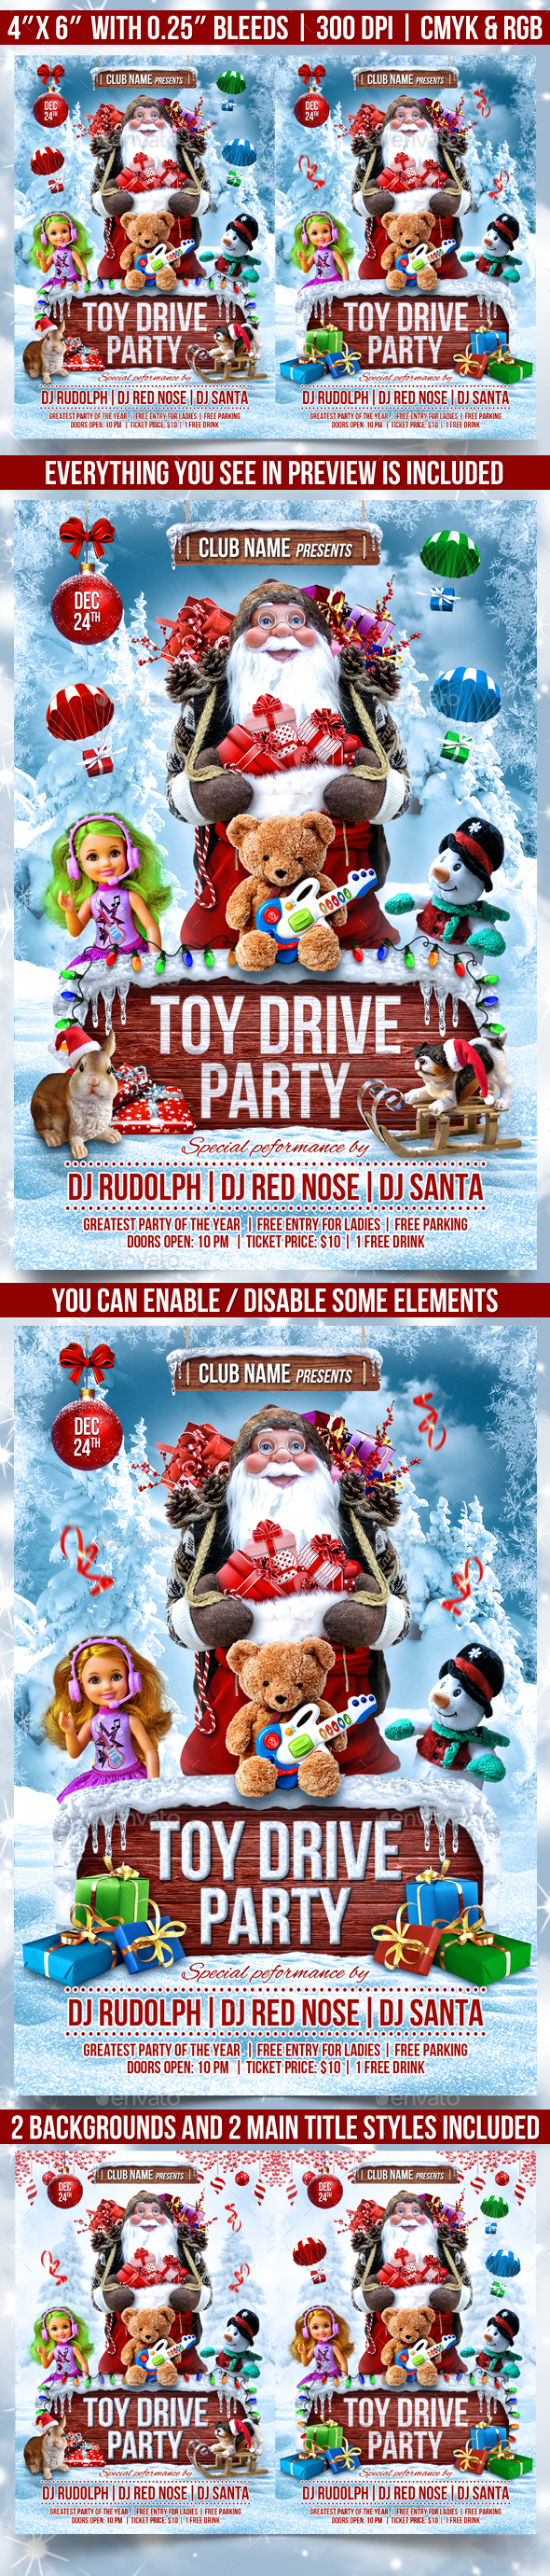 Toy Drive Party Flyer Template - Events Flyers